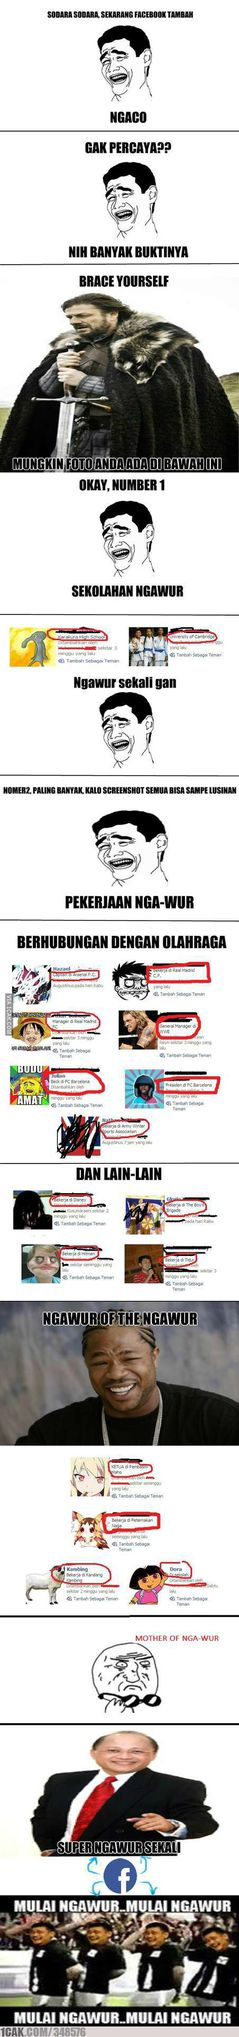 mother of ngawur in facebook from 1CAK.com